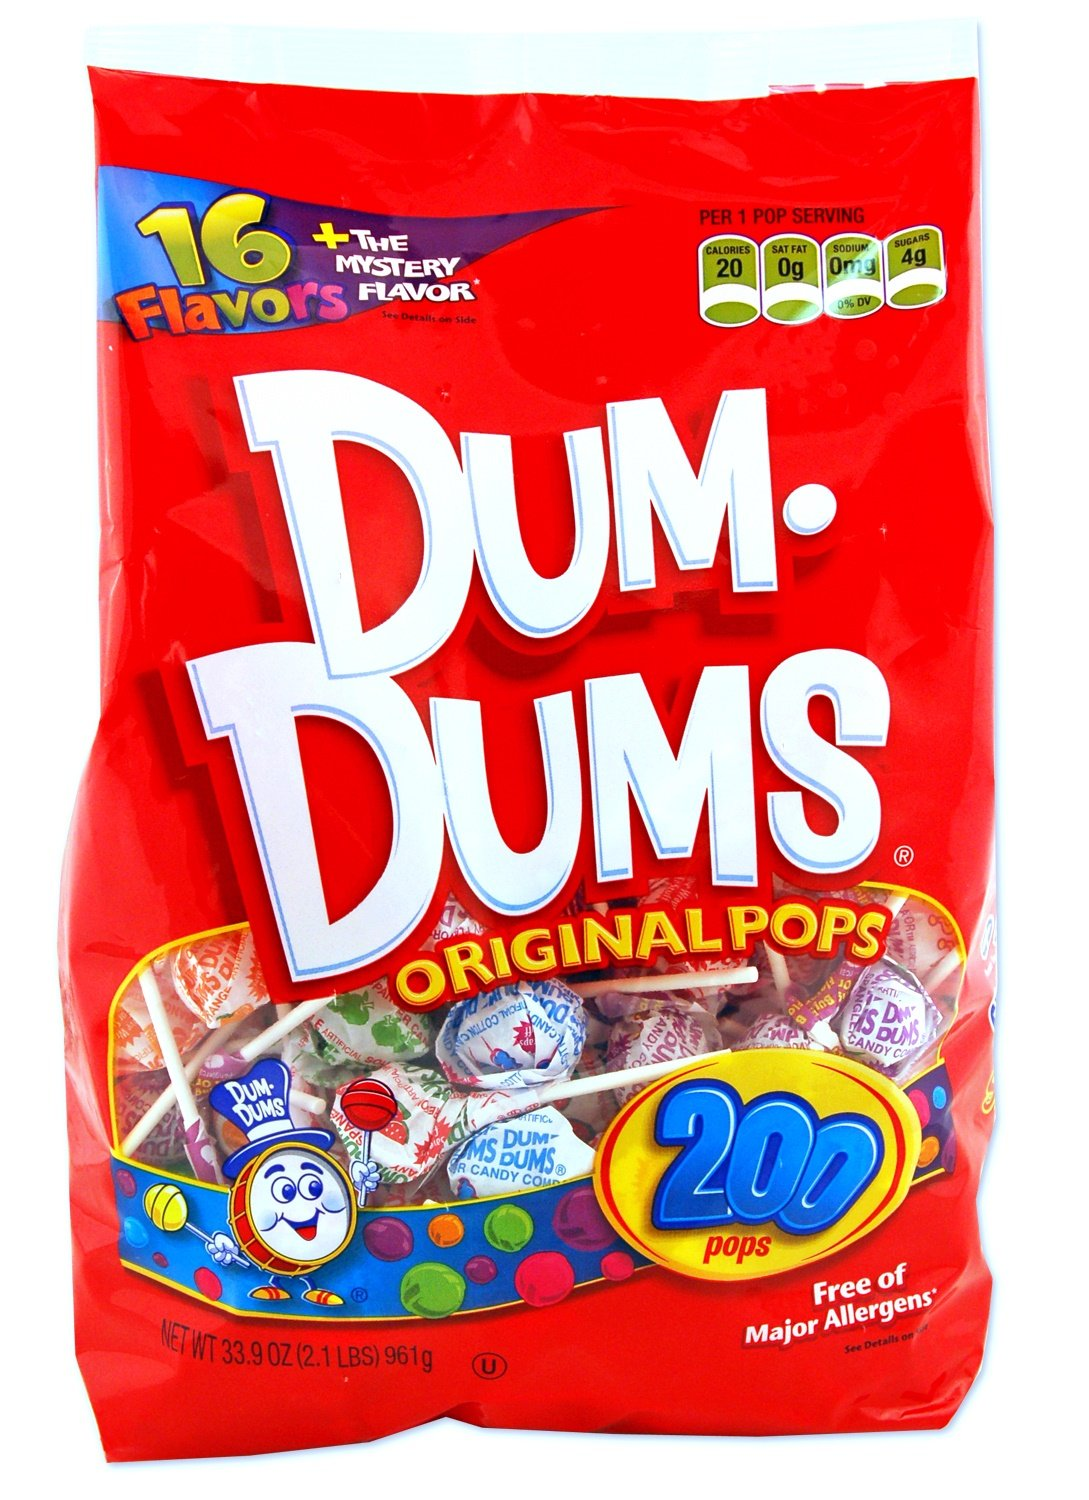 DUM DUMS Lollipops, Variety Flavor Mix, 200 Count Bag by Dum Dums